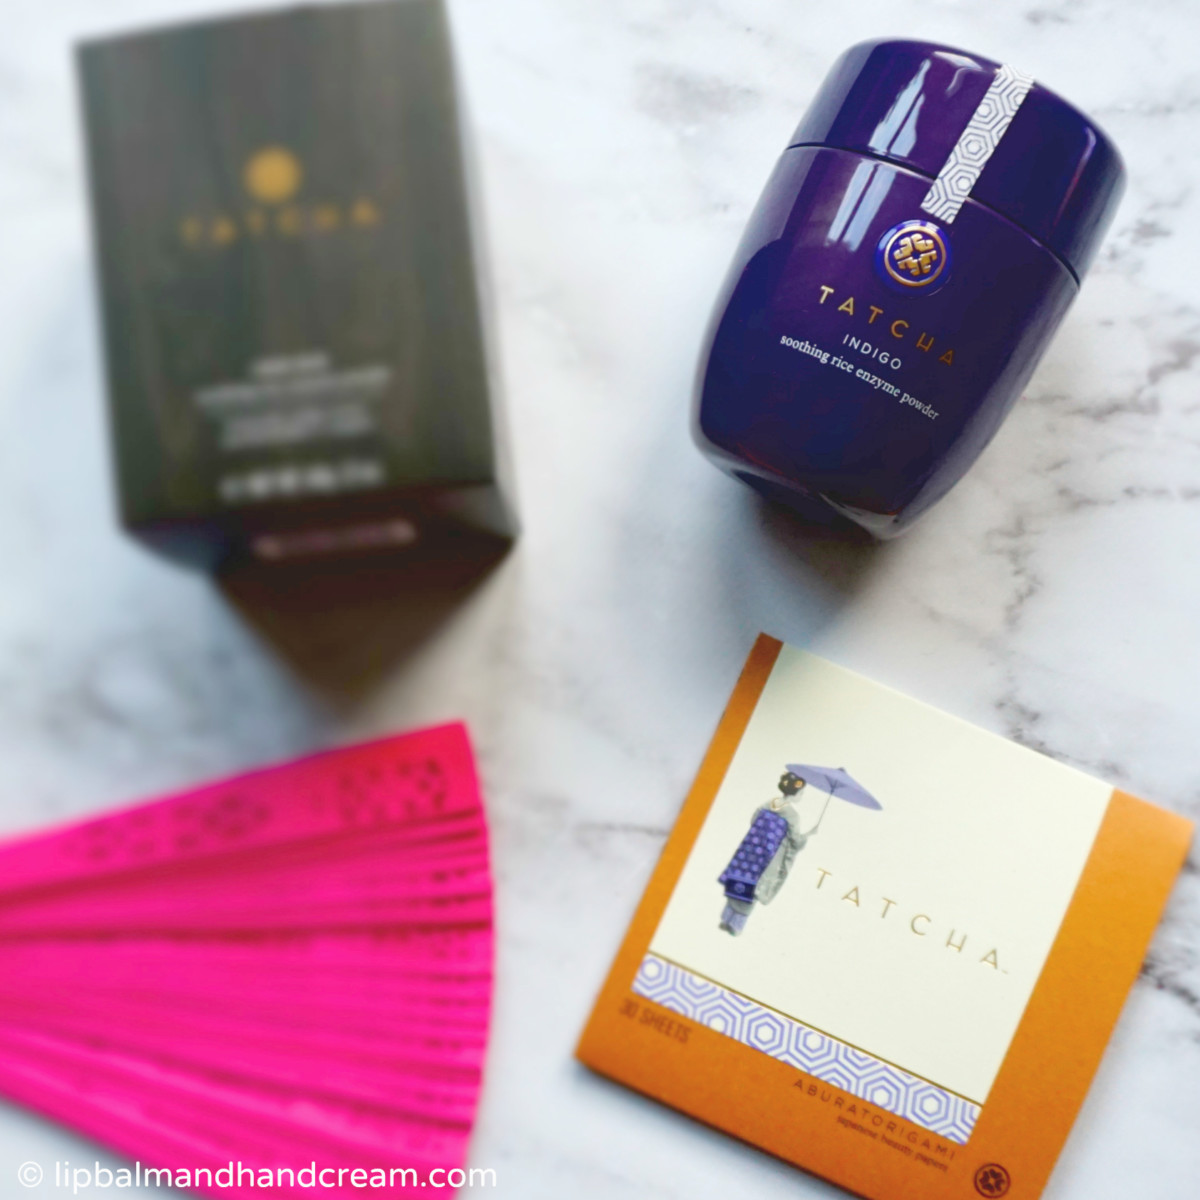 Topped up on some Tatcha from Sephora